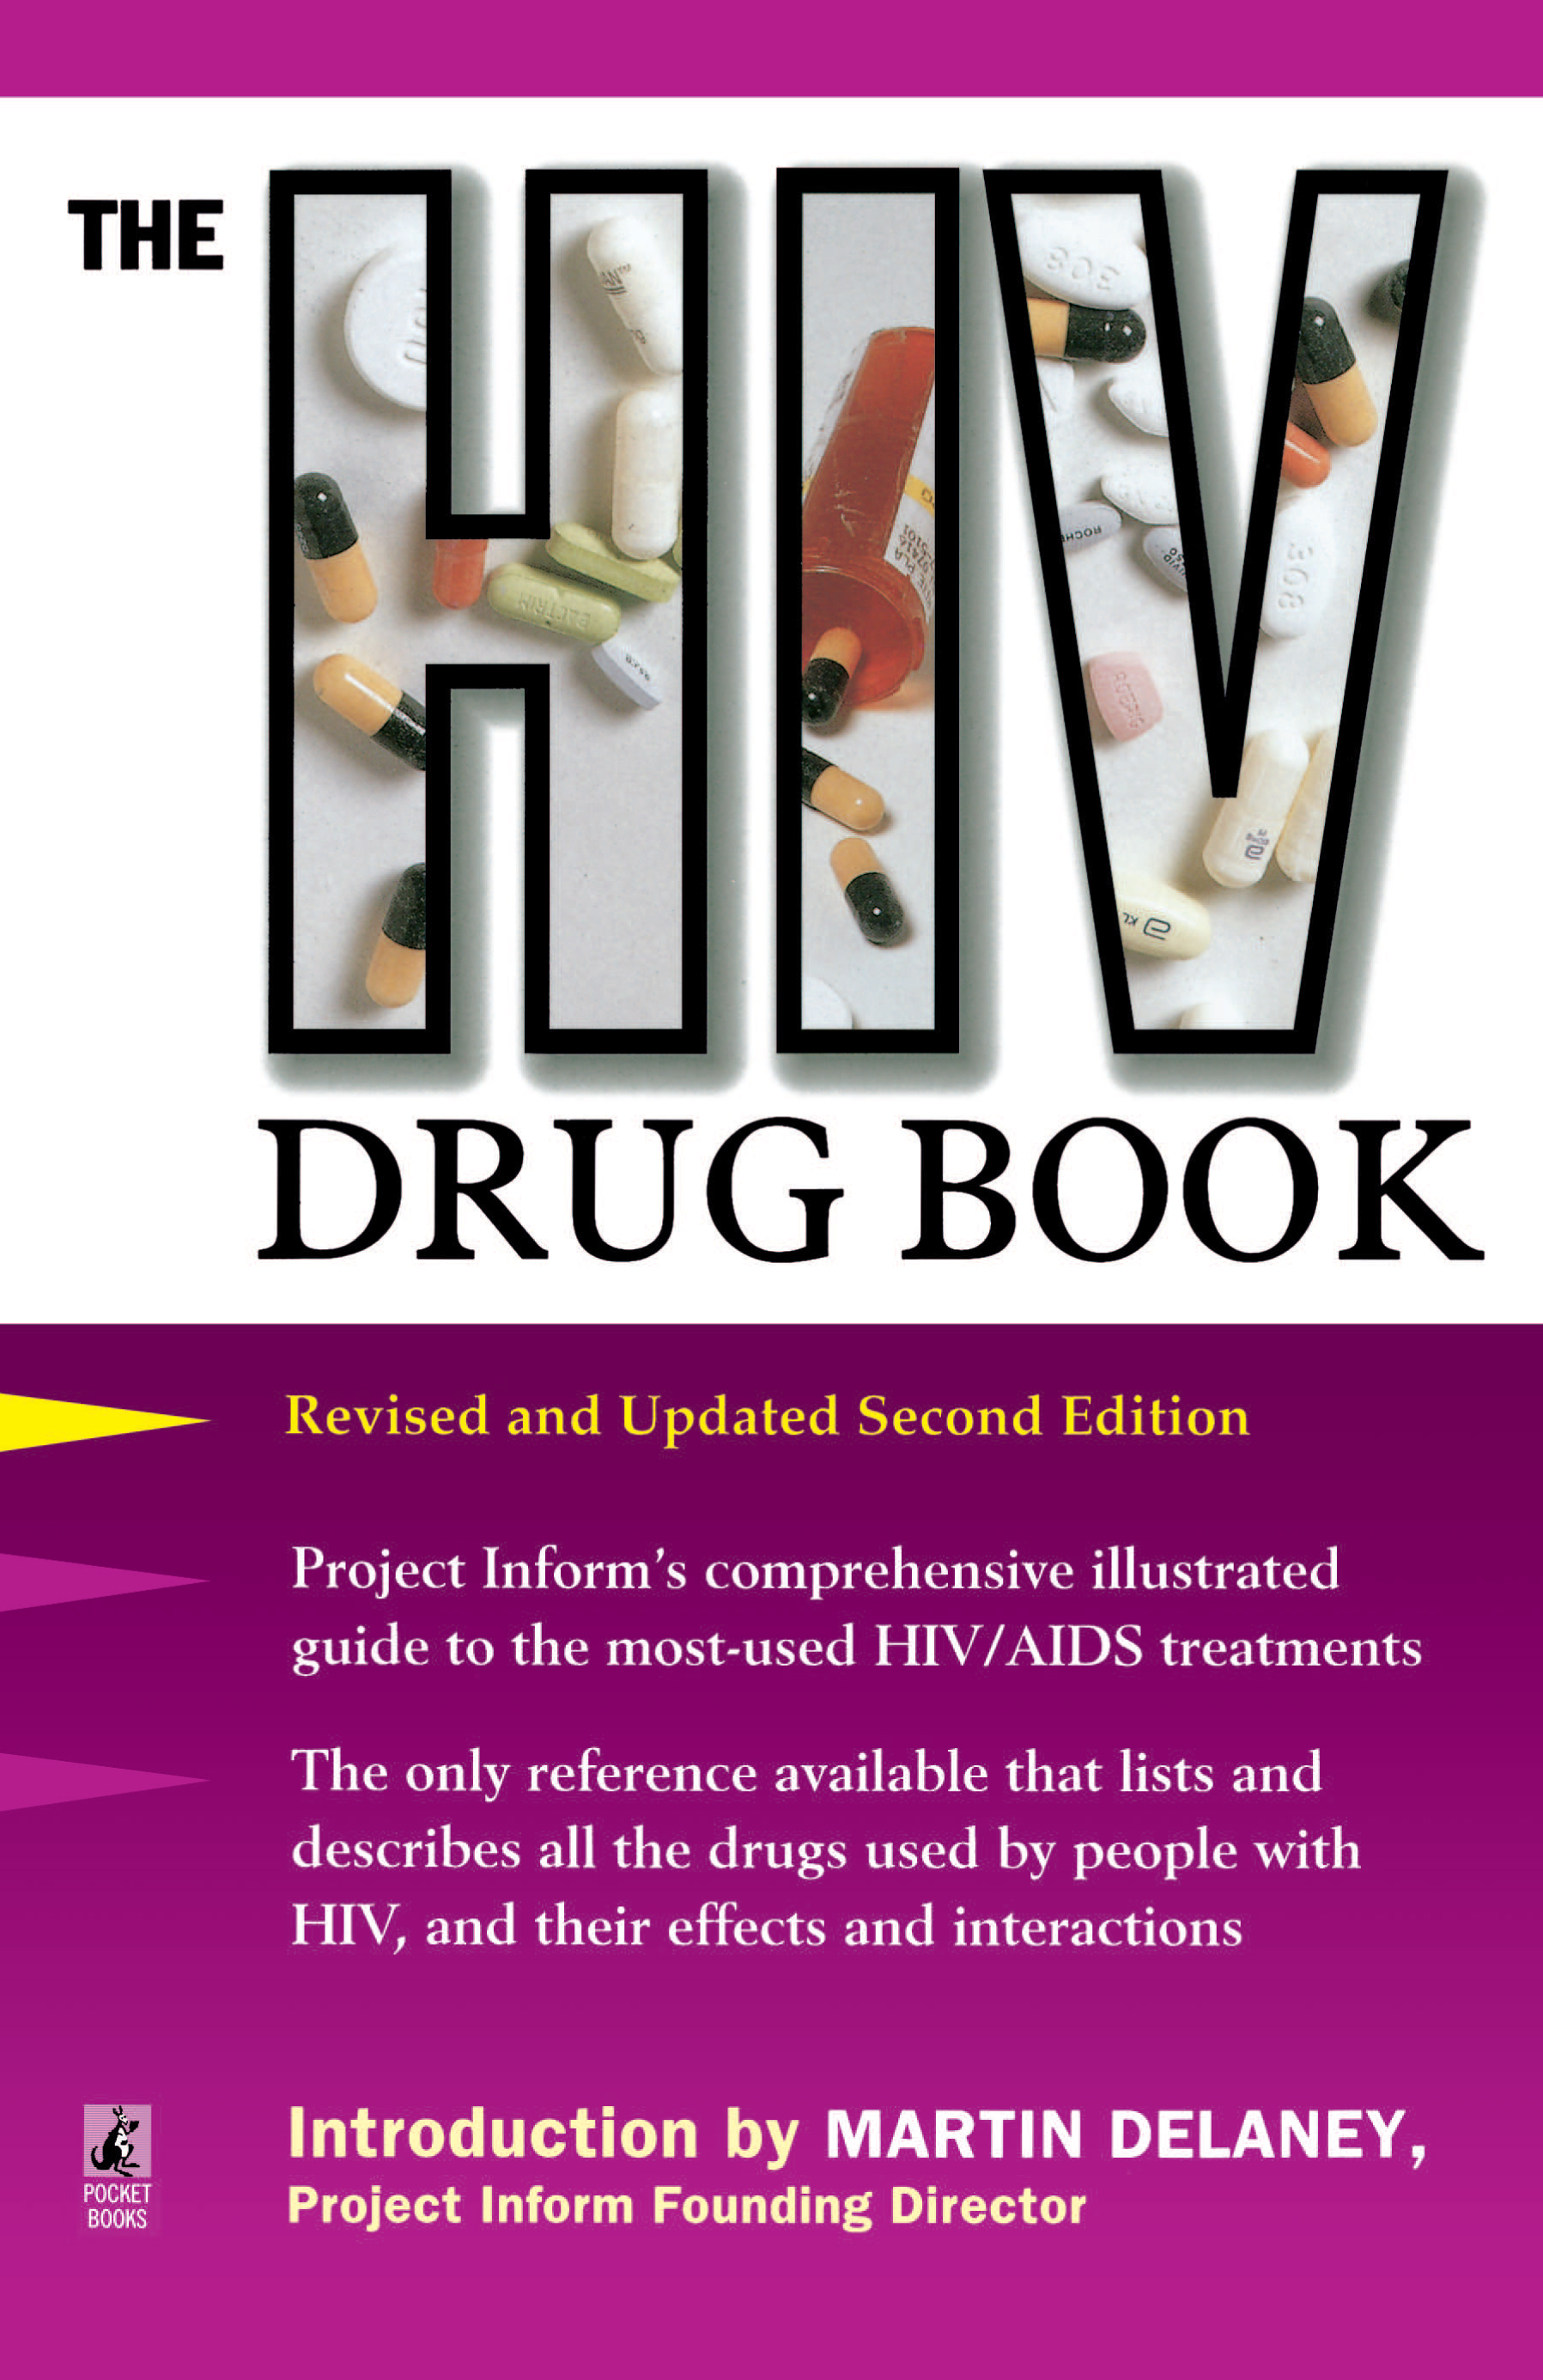 the scientific search for hiv treatment using protease inhibitors The first cohort comprised patients commencing treatment with any of the hiv protease inhibitors and was used to estimate the incidence rate of urological symptoms during use of different hiv protease inhibitors.